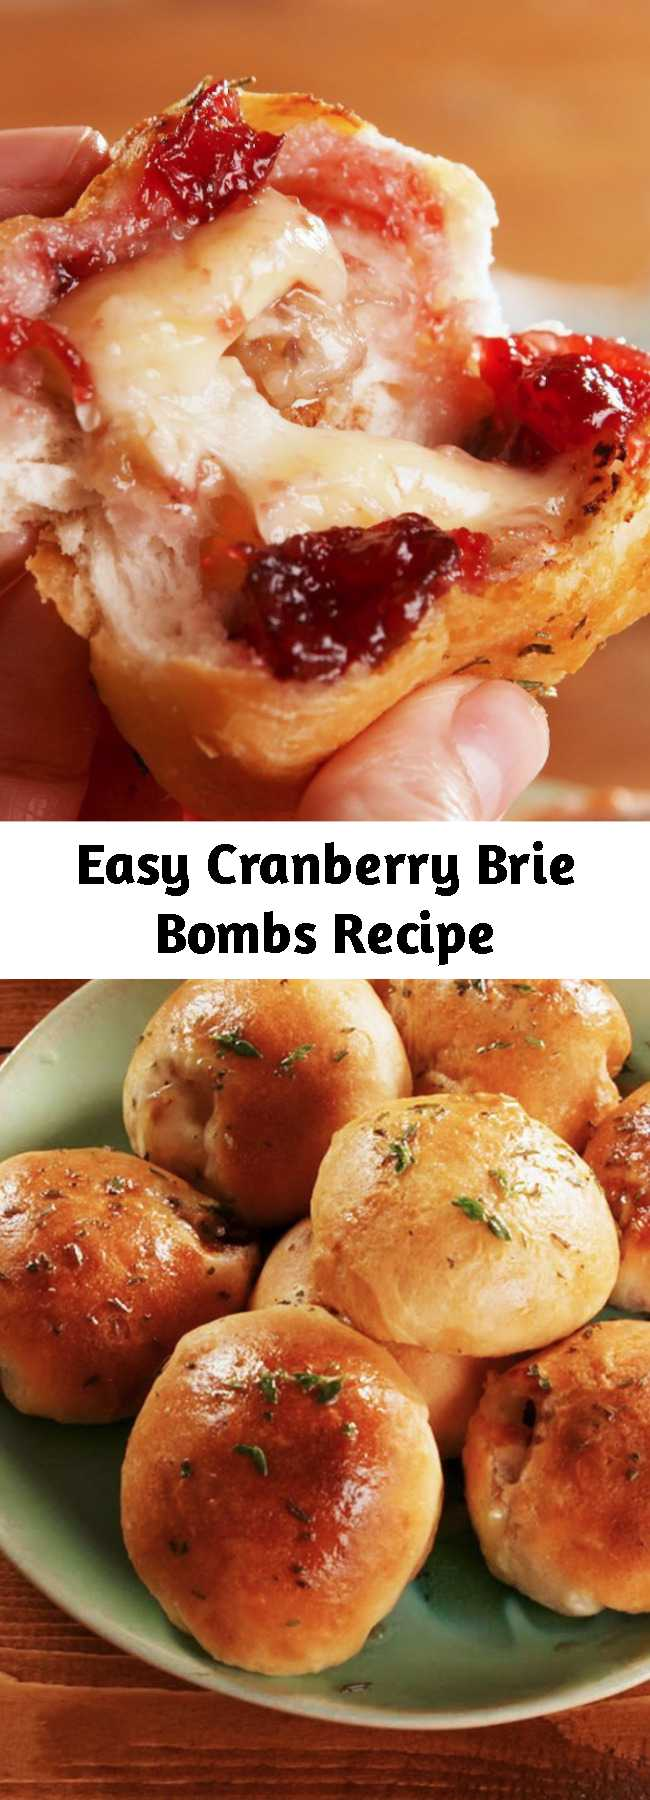 Easy Cranberry Brie Bombs Recipe - This easy appetizer is perfect for your holiday party. It's just another reason why we love biscuit dough! Stuffing crescent roll with brie and cranberry sauce is life changing. #easy #recipe #brie #cranberry #appetizer #thanksgiving #bombs #cheese